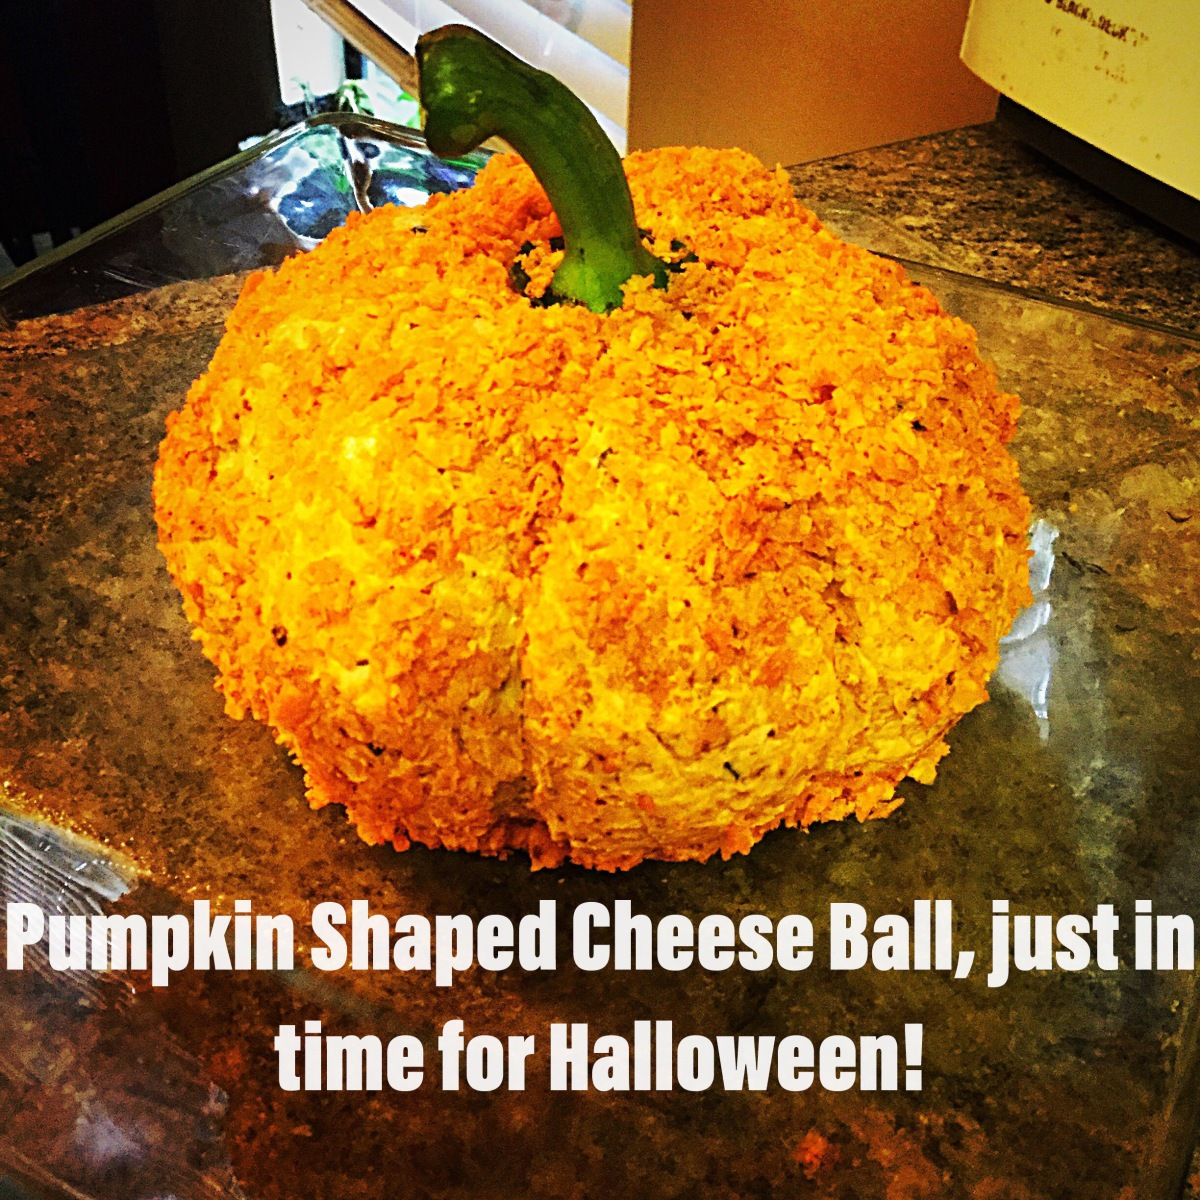 Pumpkin-Shaped Cheese Ball ala Bobbe!